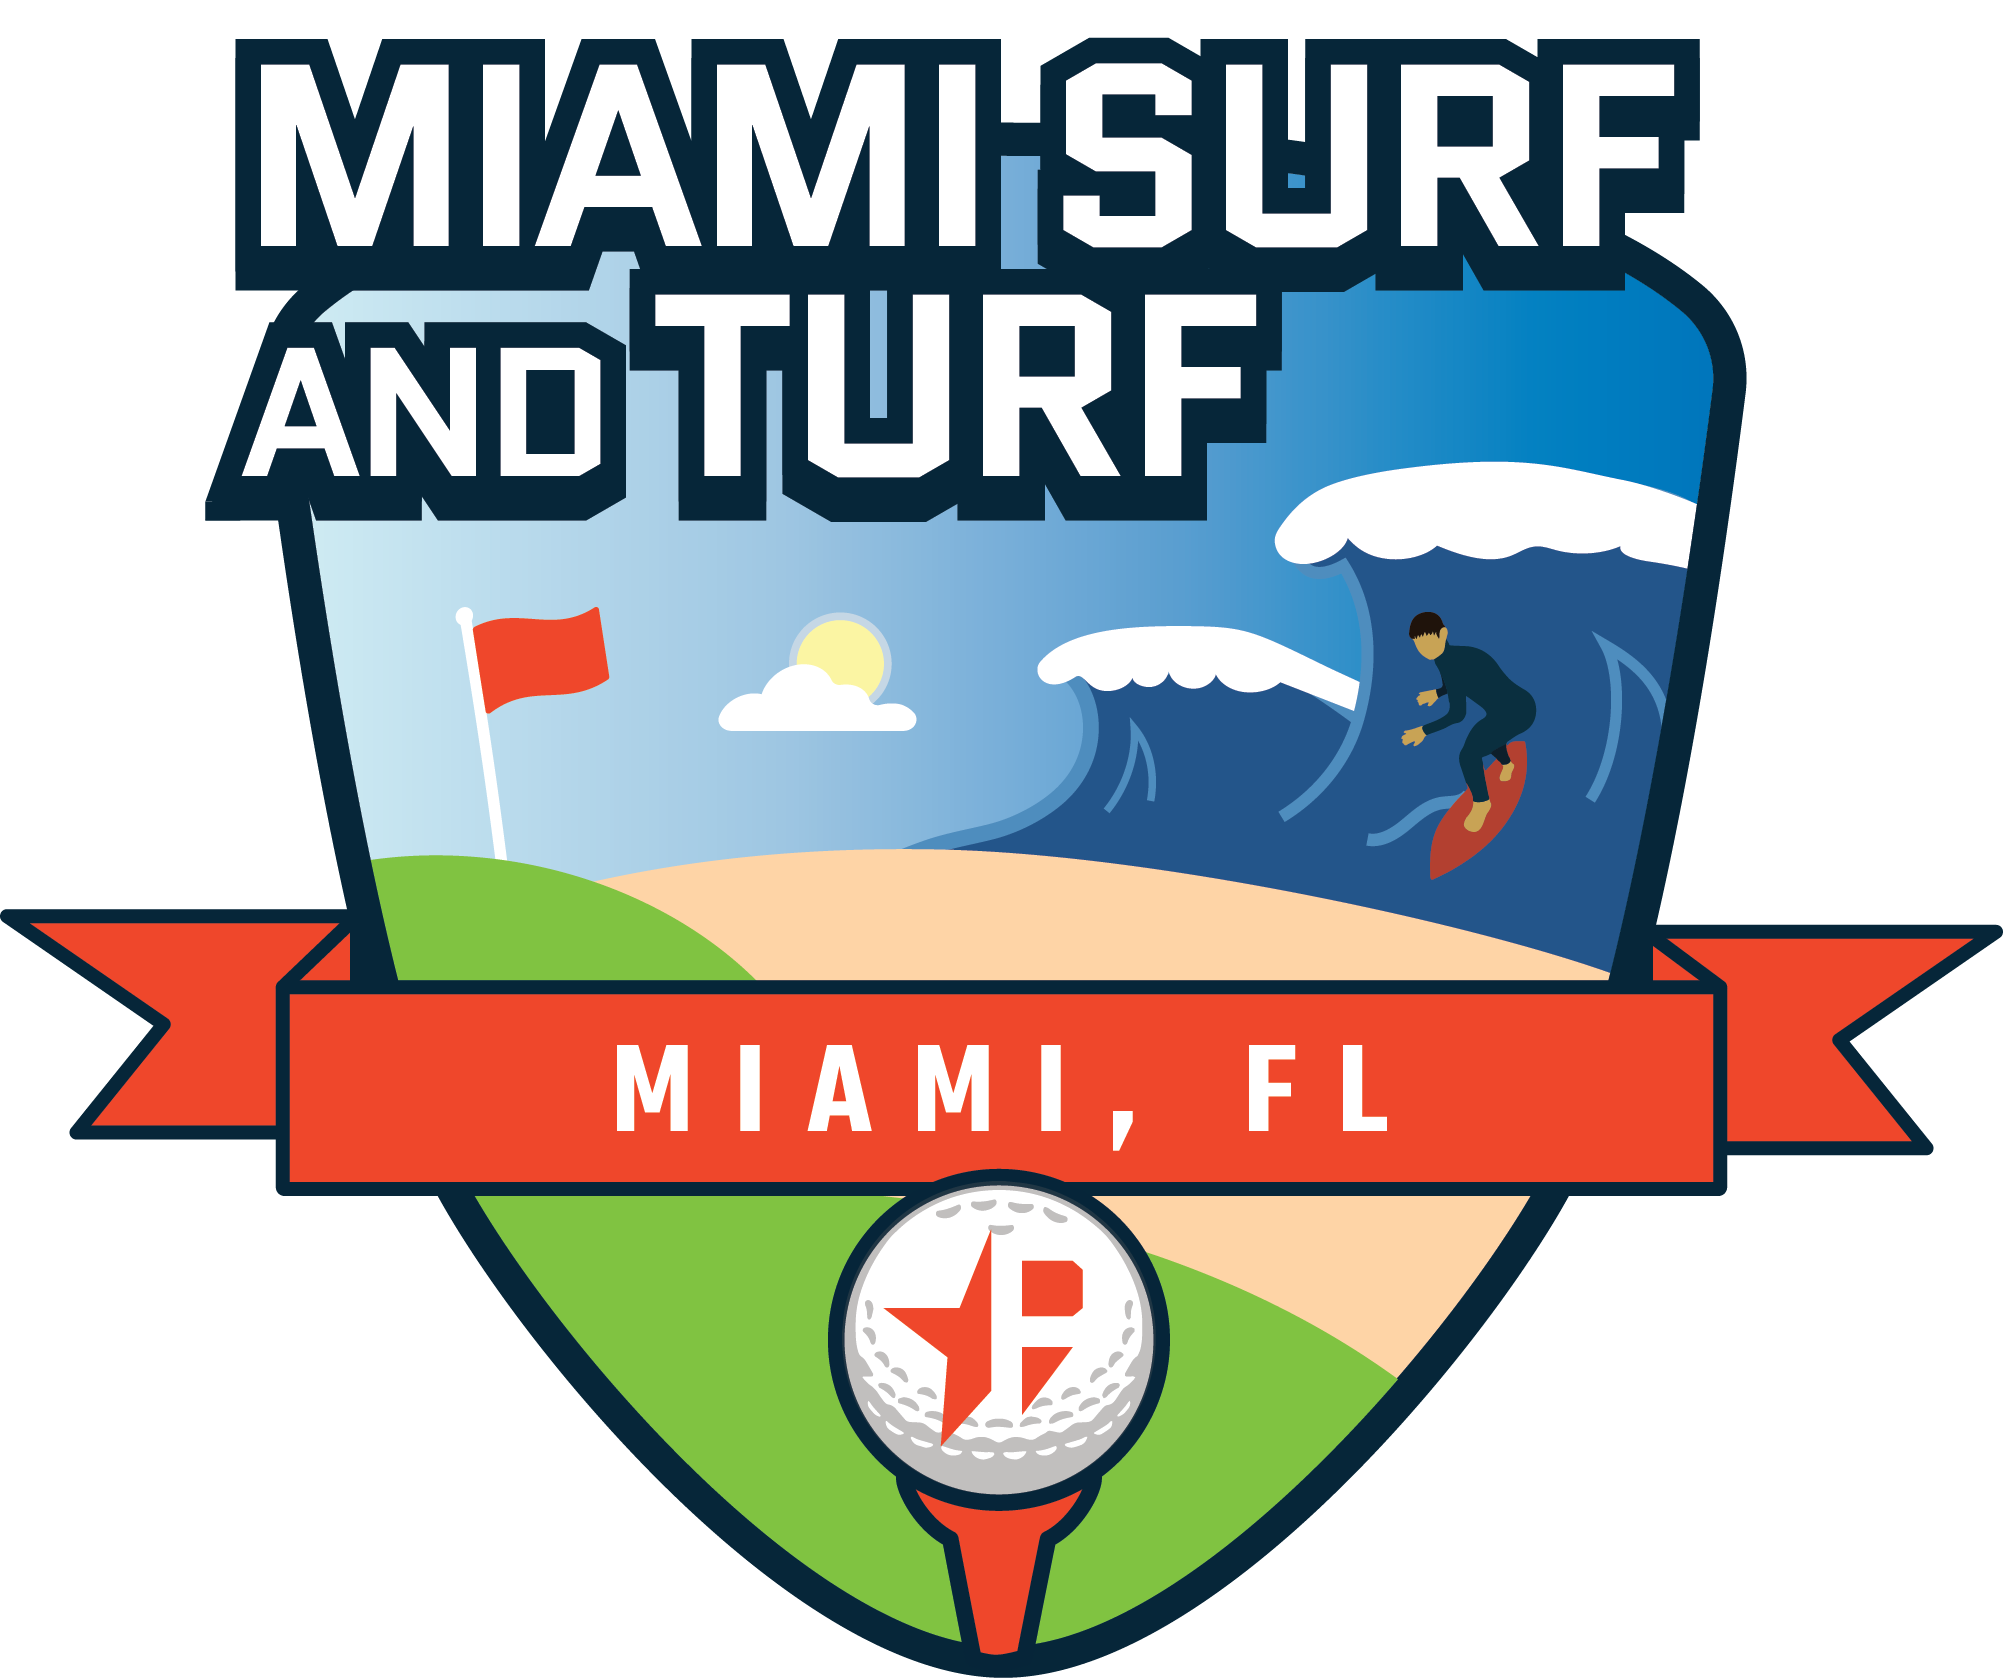 Prospects by Sports Illustrated - Miami Surf N' Turf logo